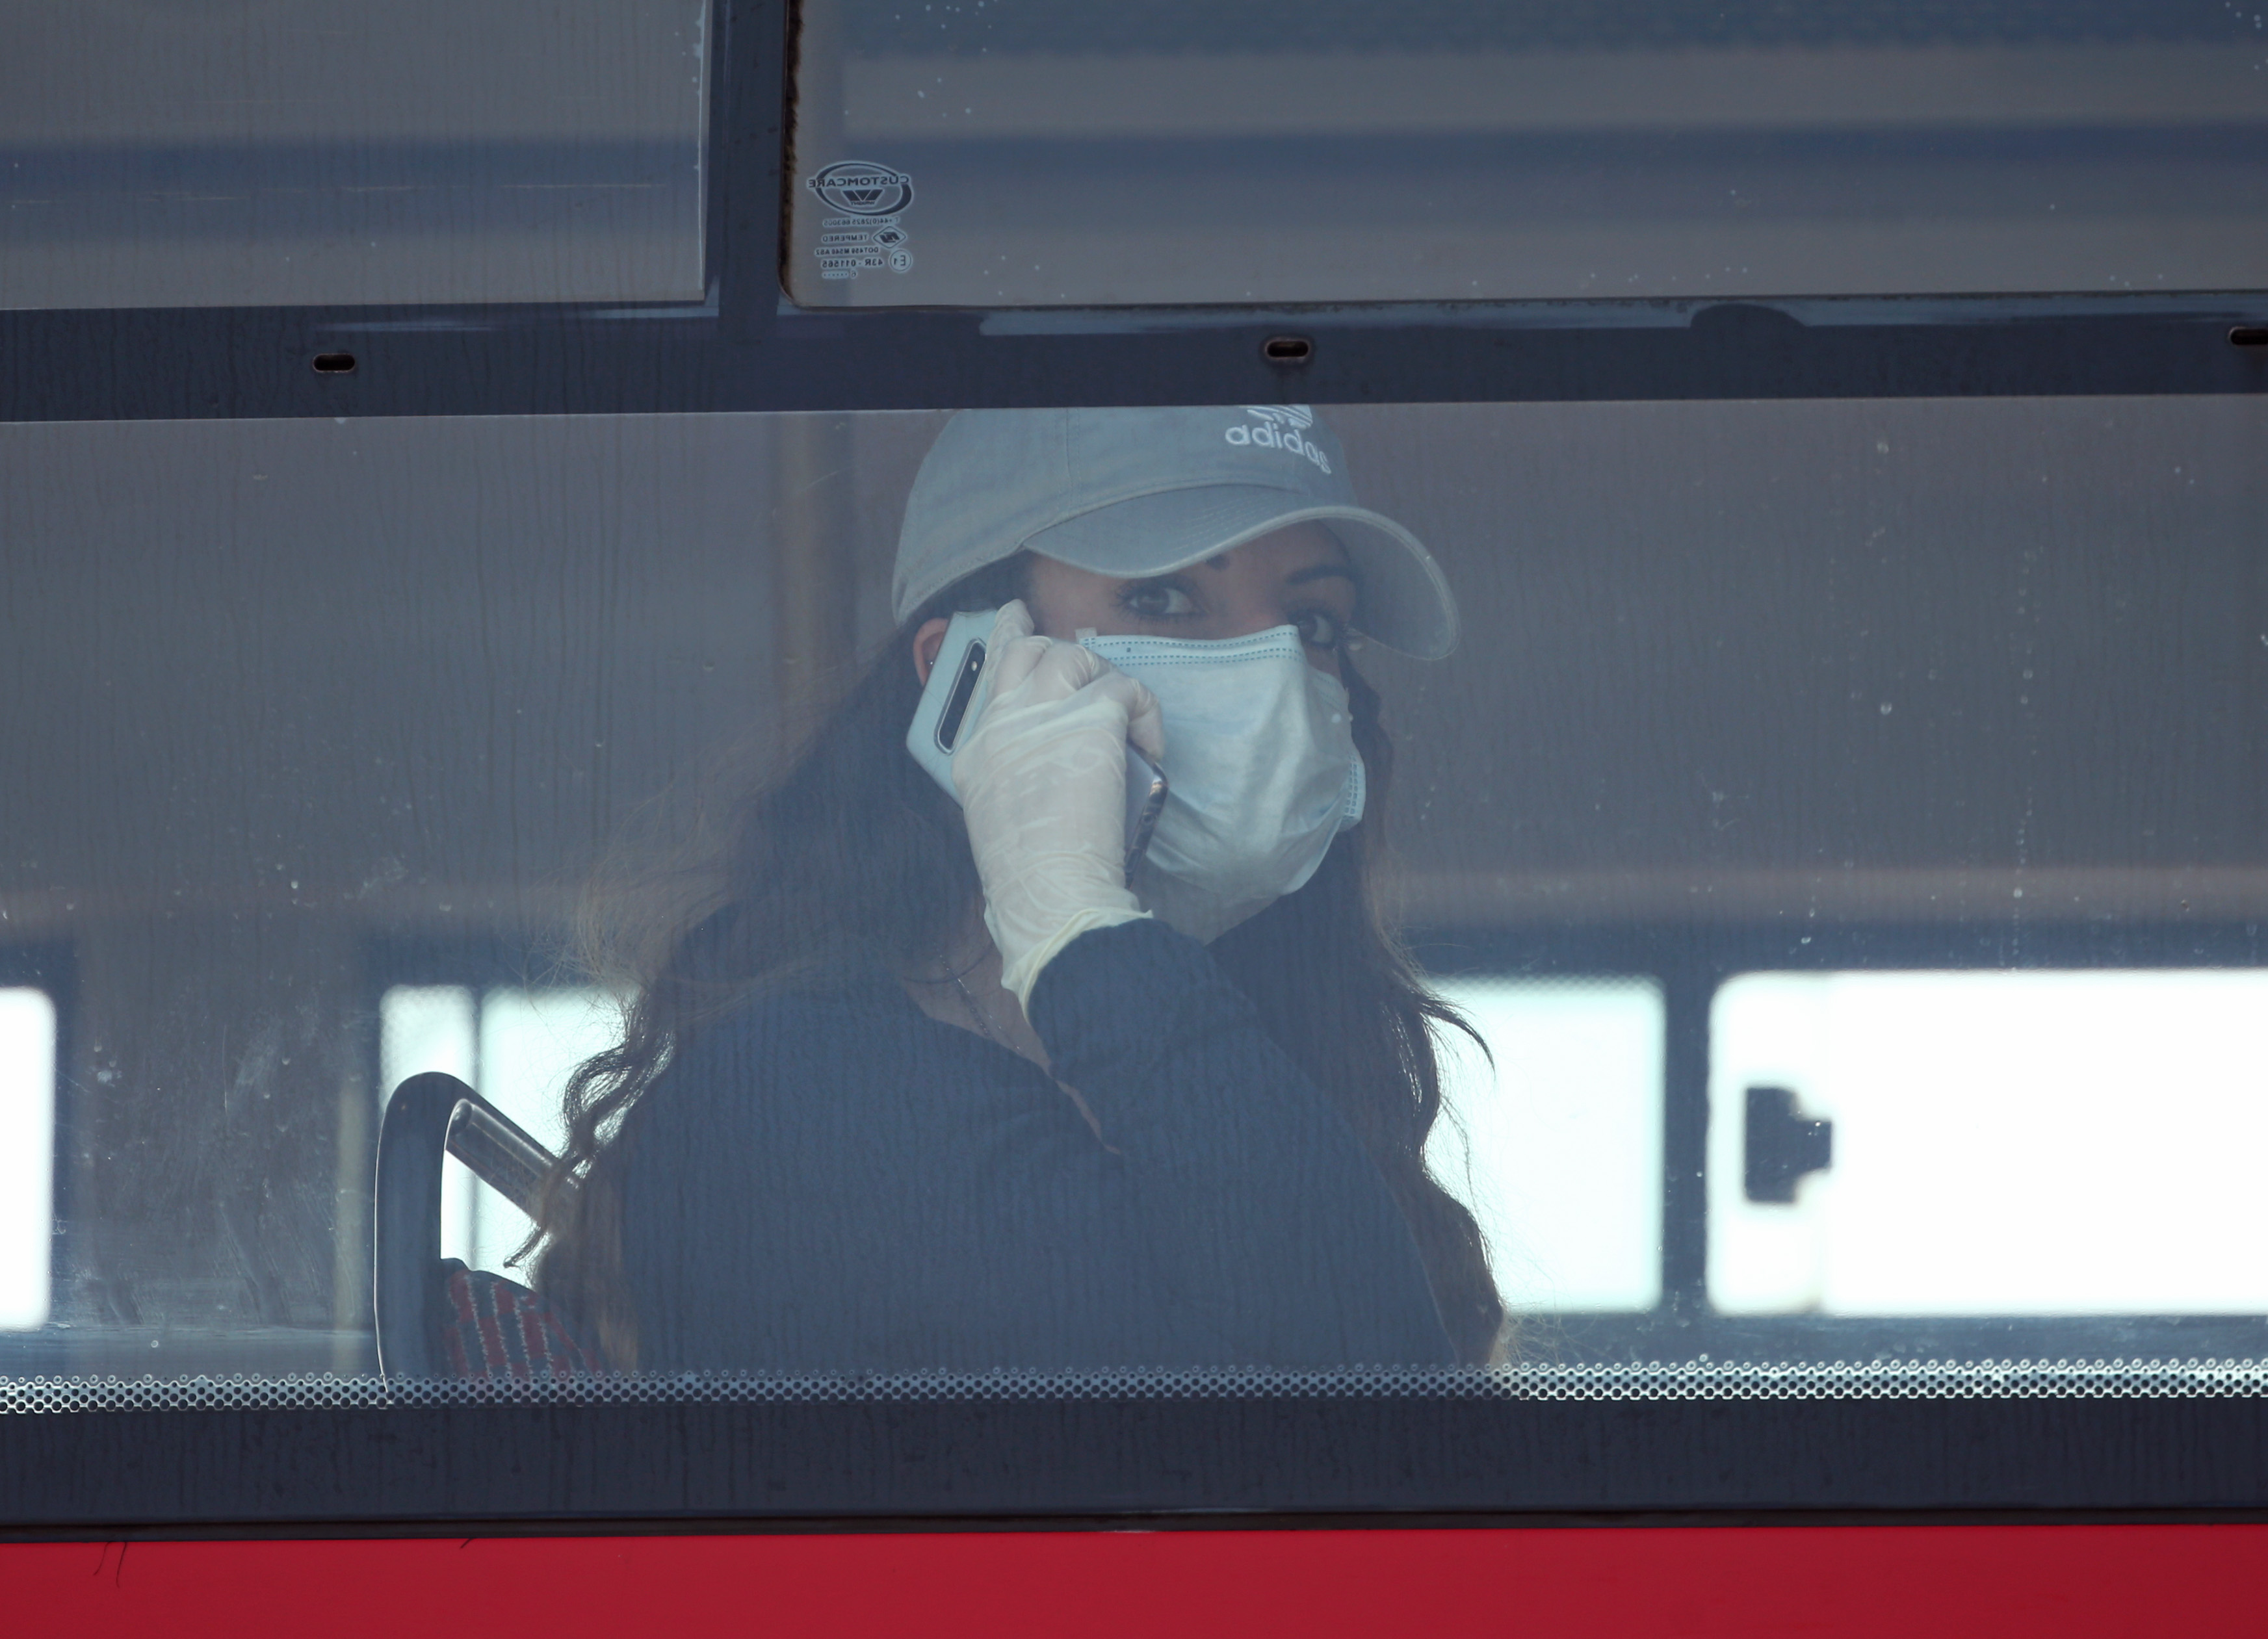 A woman on a bus wearing a face mask and latex gloves on Westminster Bridge, London, as the UK continues in lockdown to help curb the spread of the coronavirus. (Photo by Yui Mok/PA Images via Getty Images)